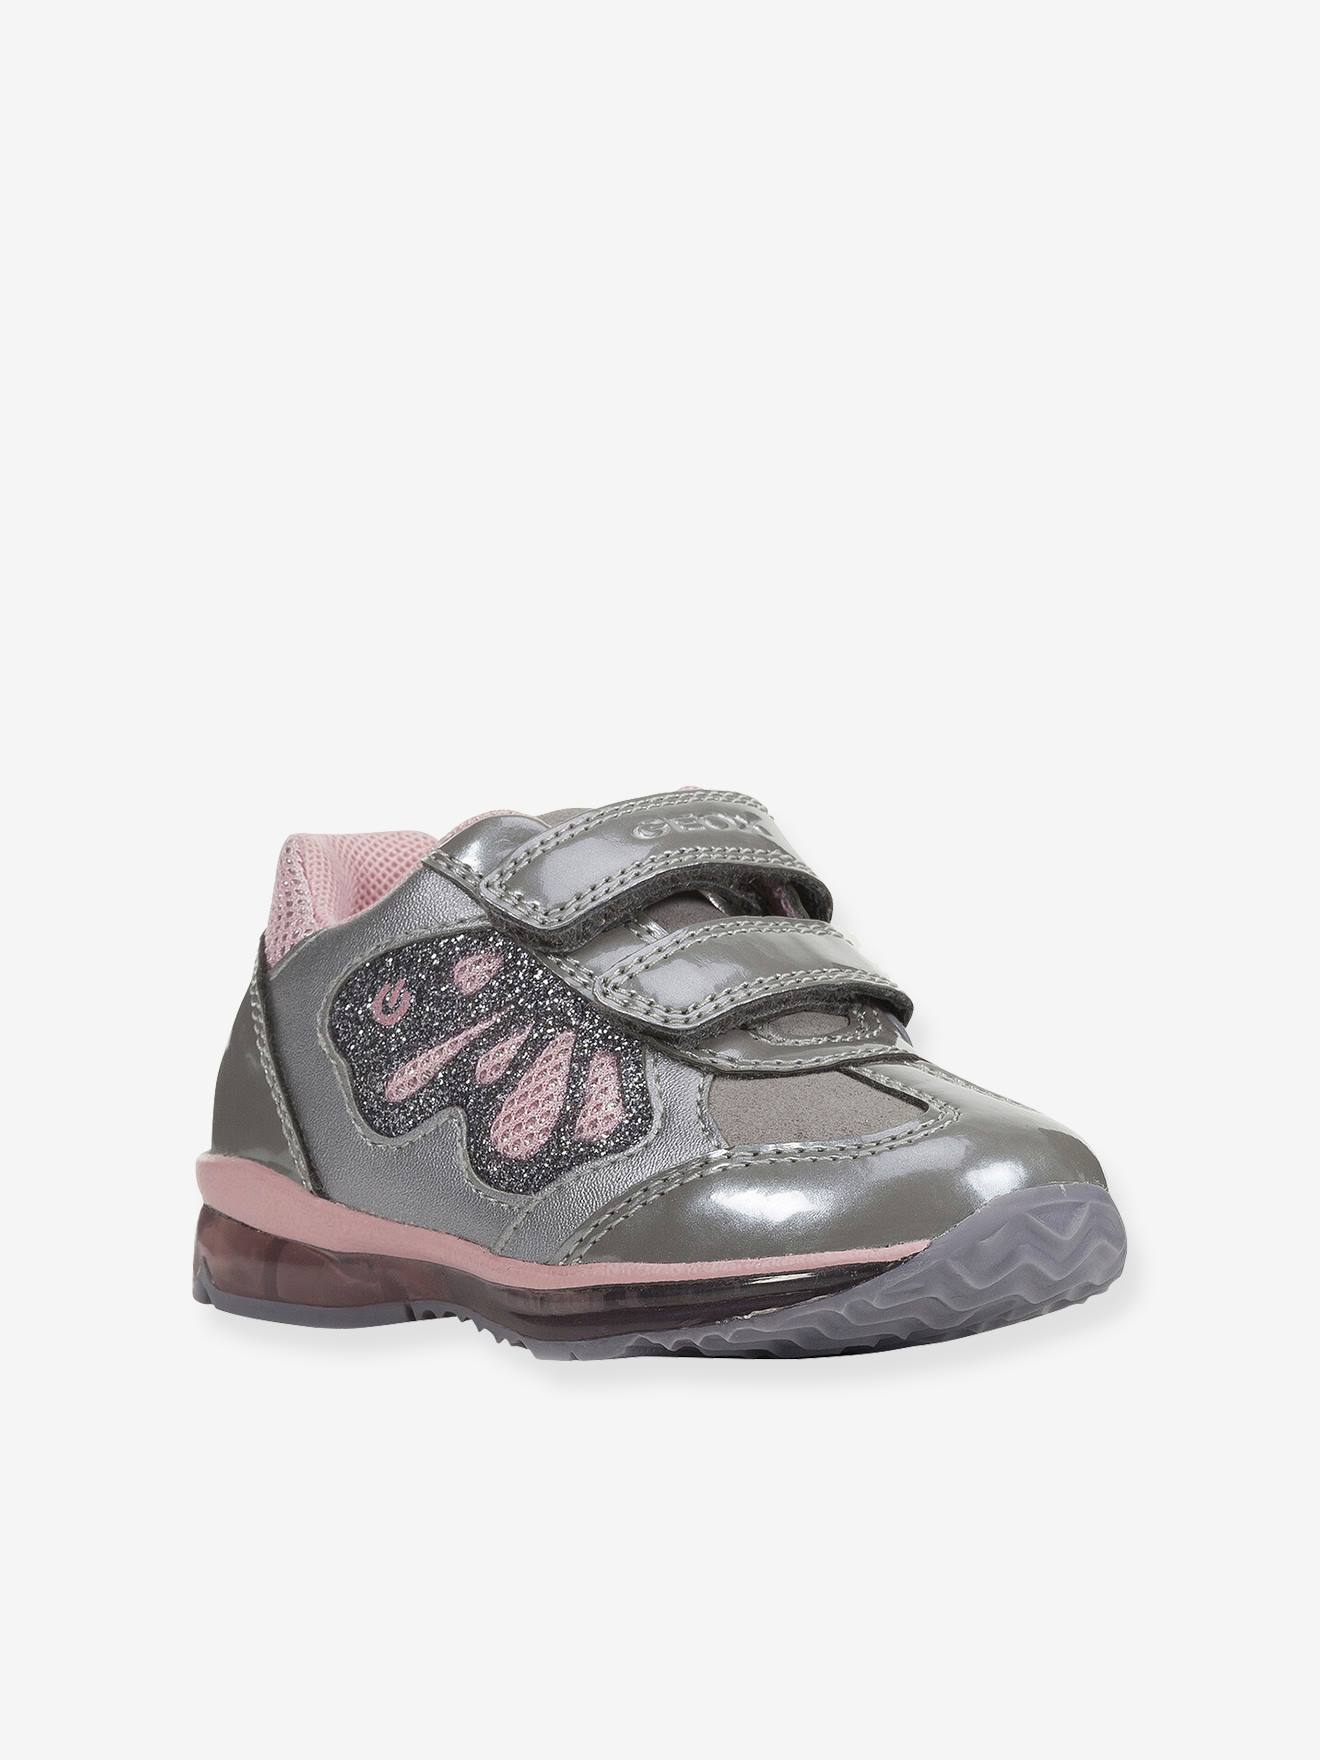 Todo Girl A Trainers for Baby Girls, by